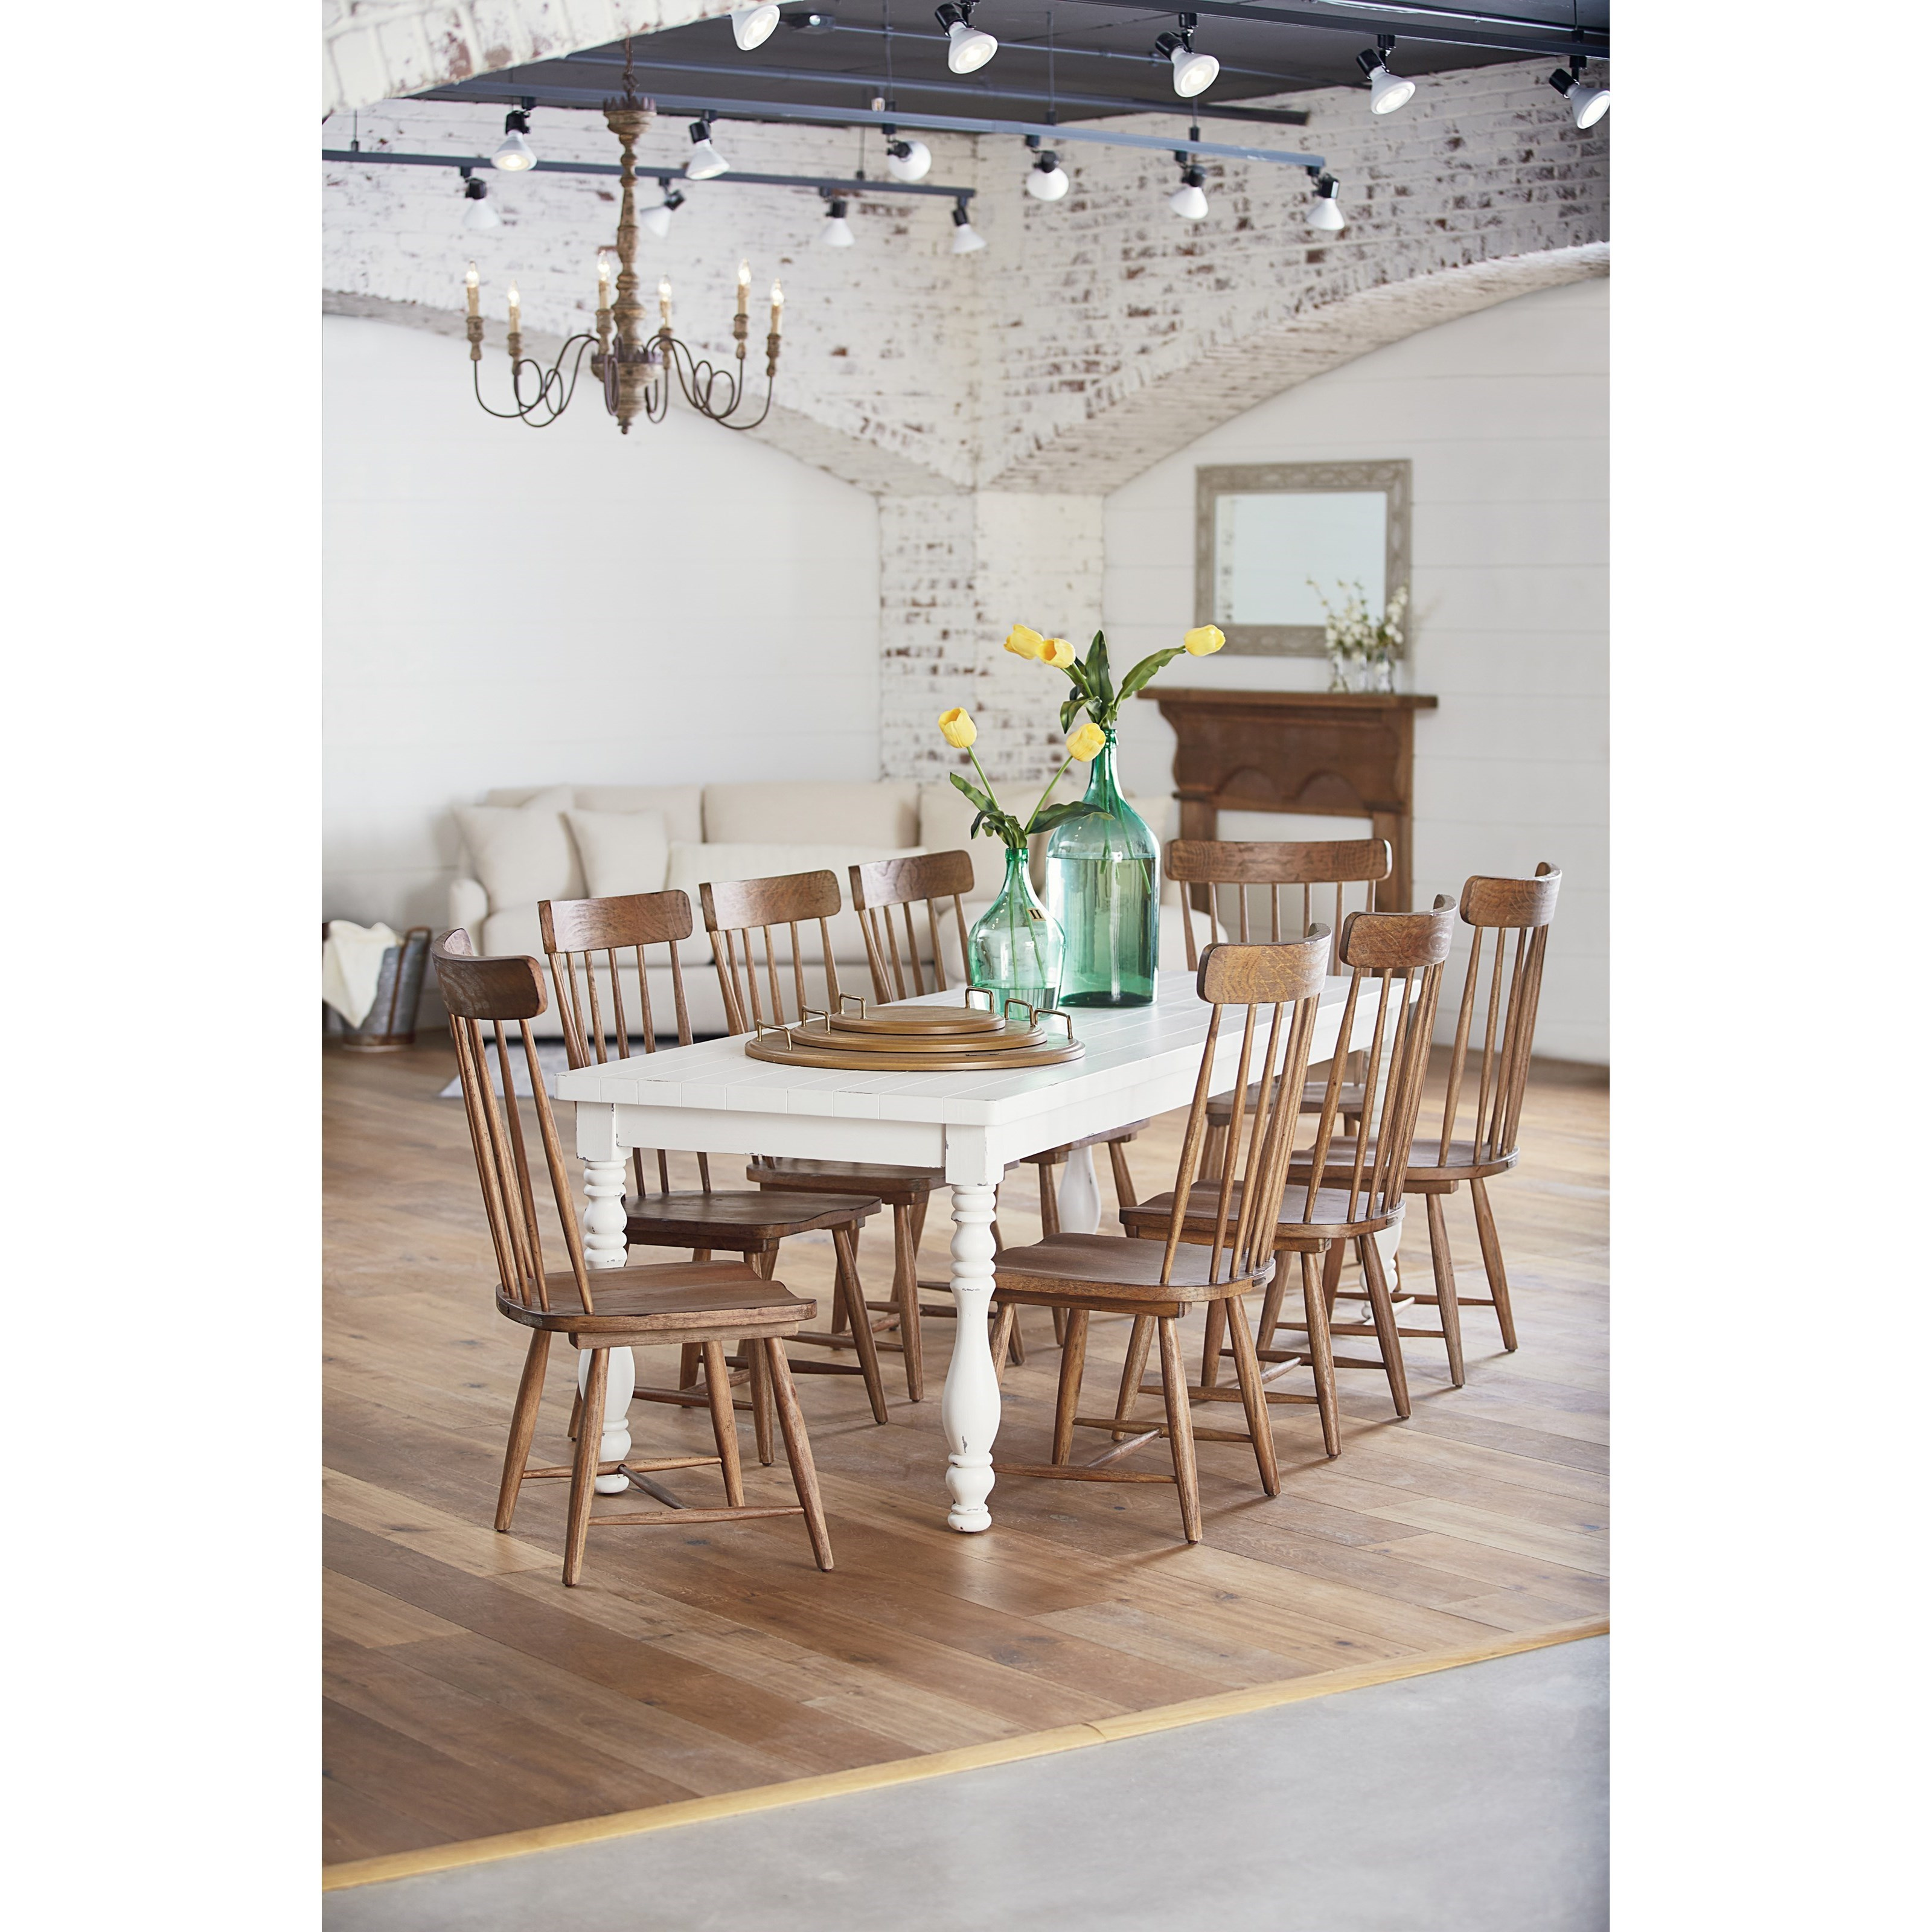 Magnolia Home by Joanna Gaines Farmhouse 9 Piece Dining Set with Spindle Chai